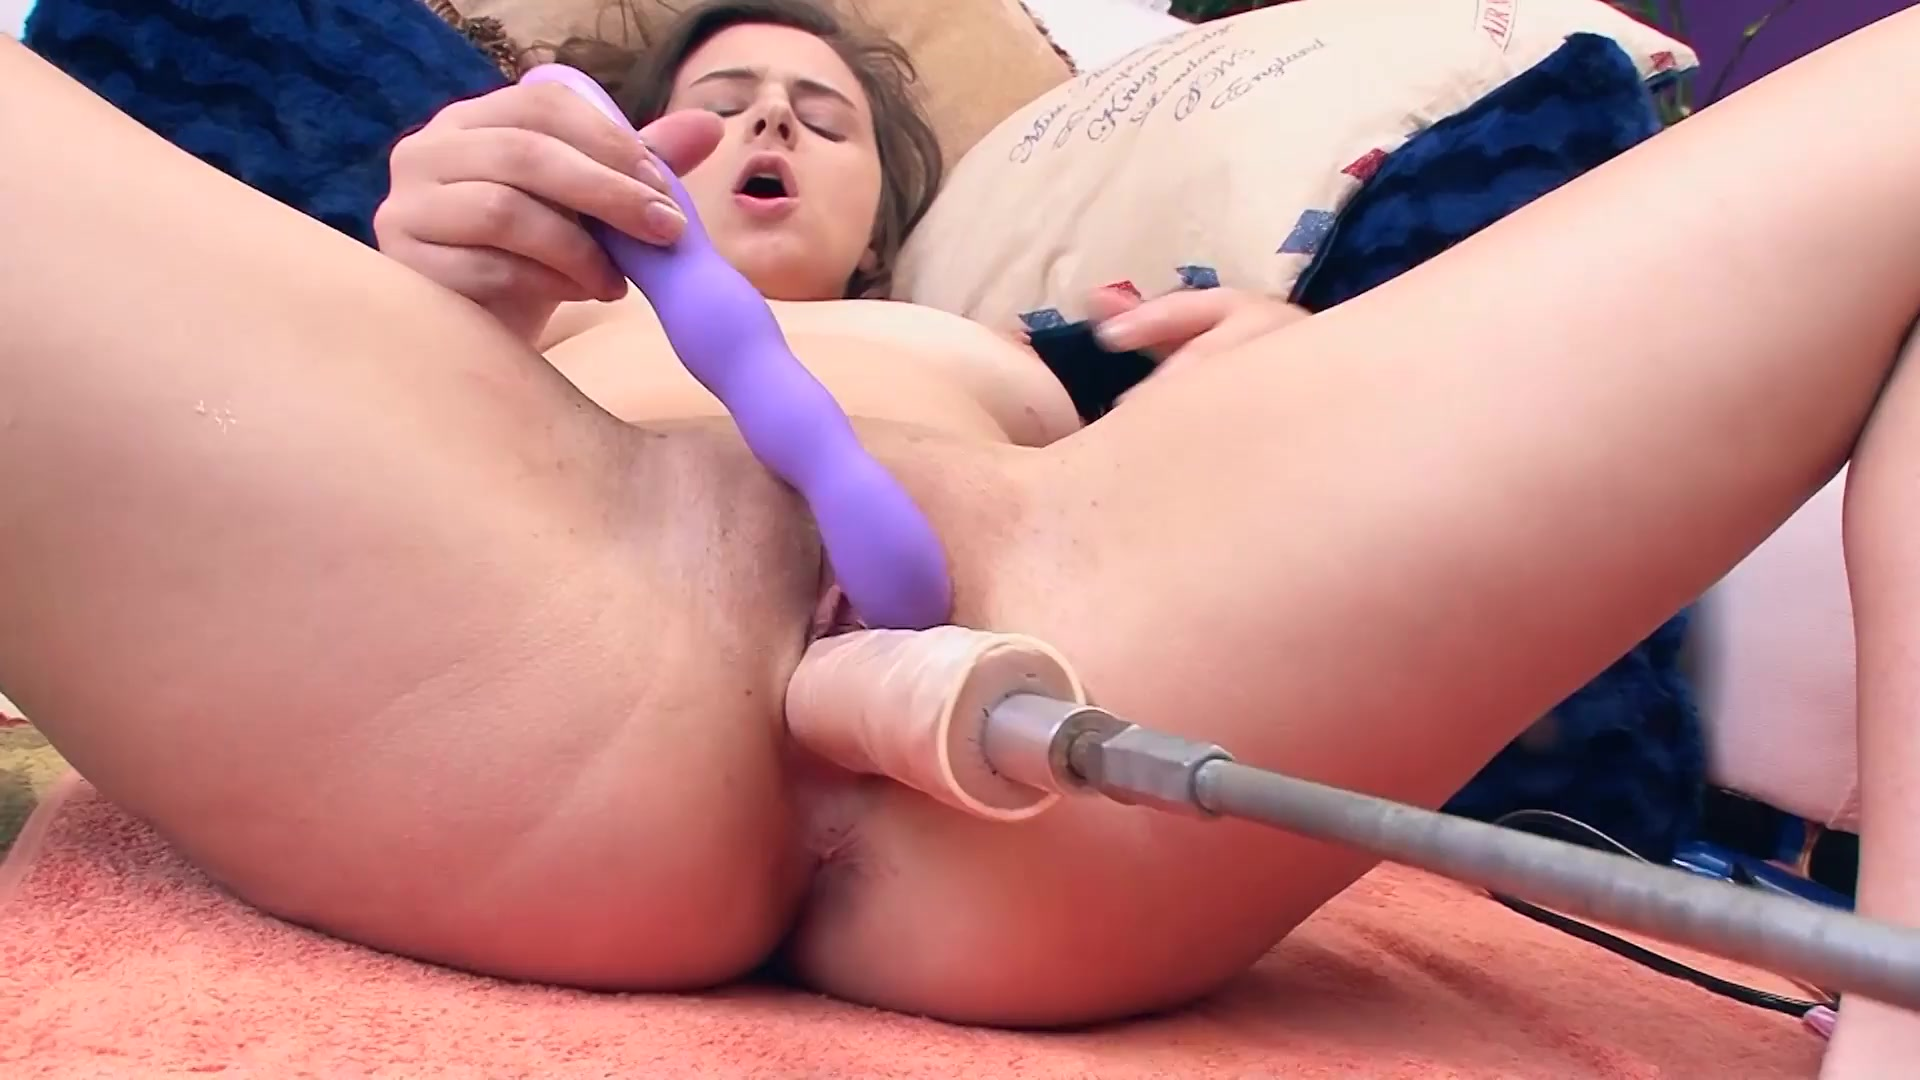 Teen girls getting fucked by machines, petite basset griffon vendeen